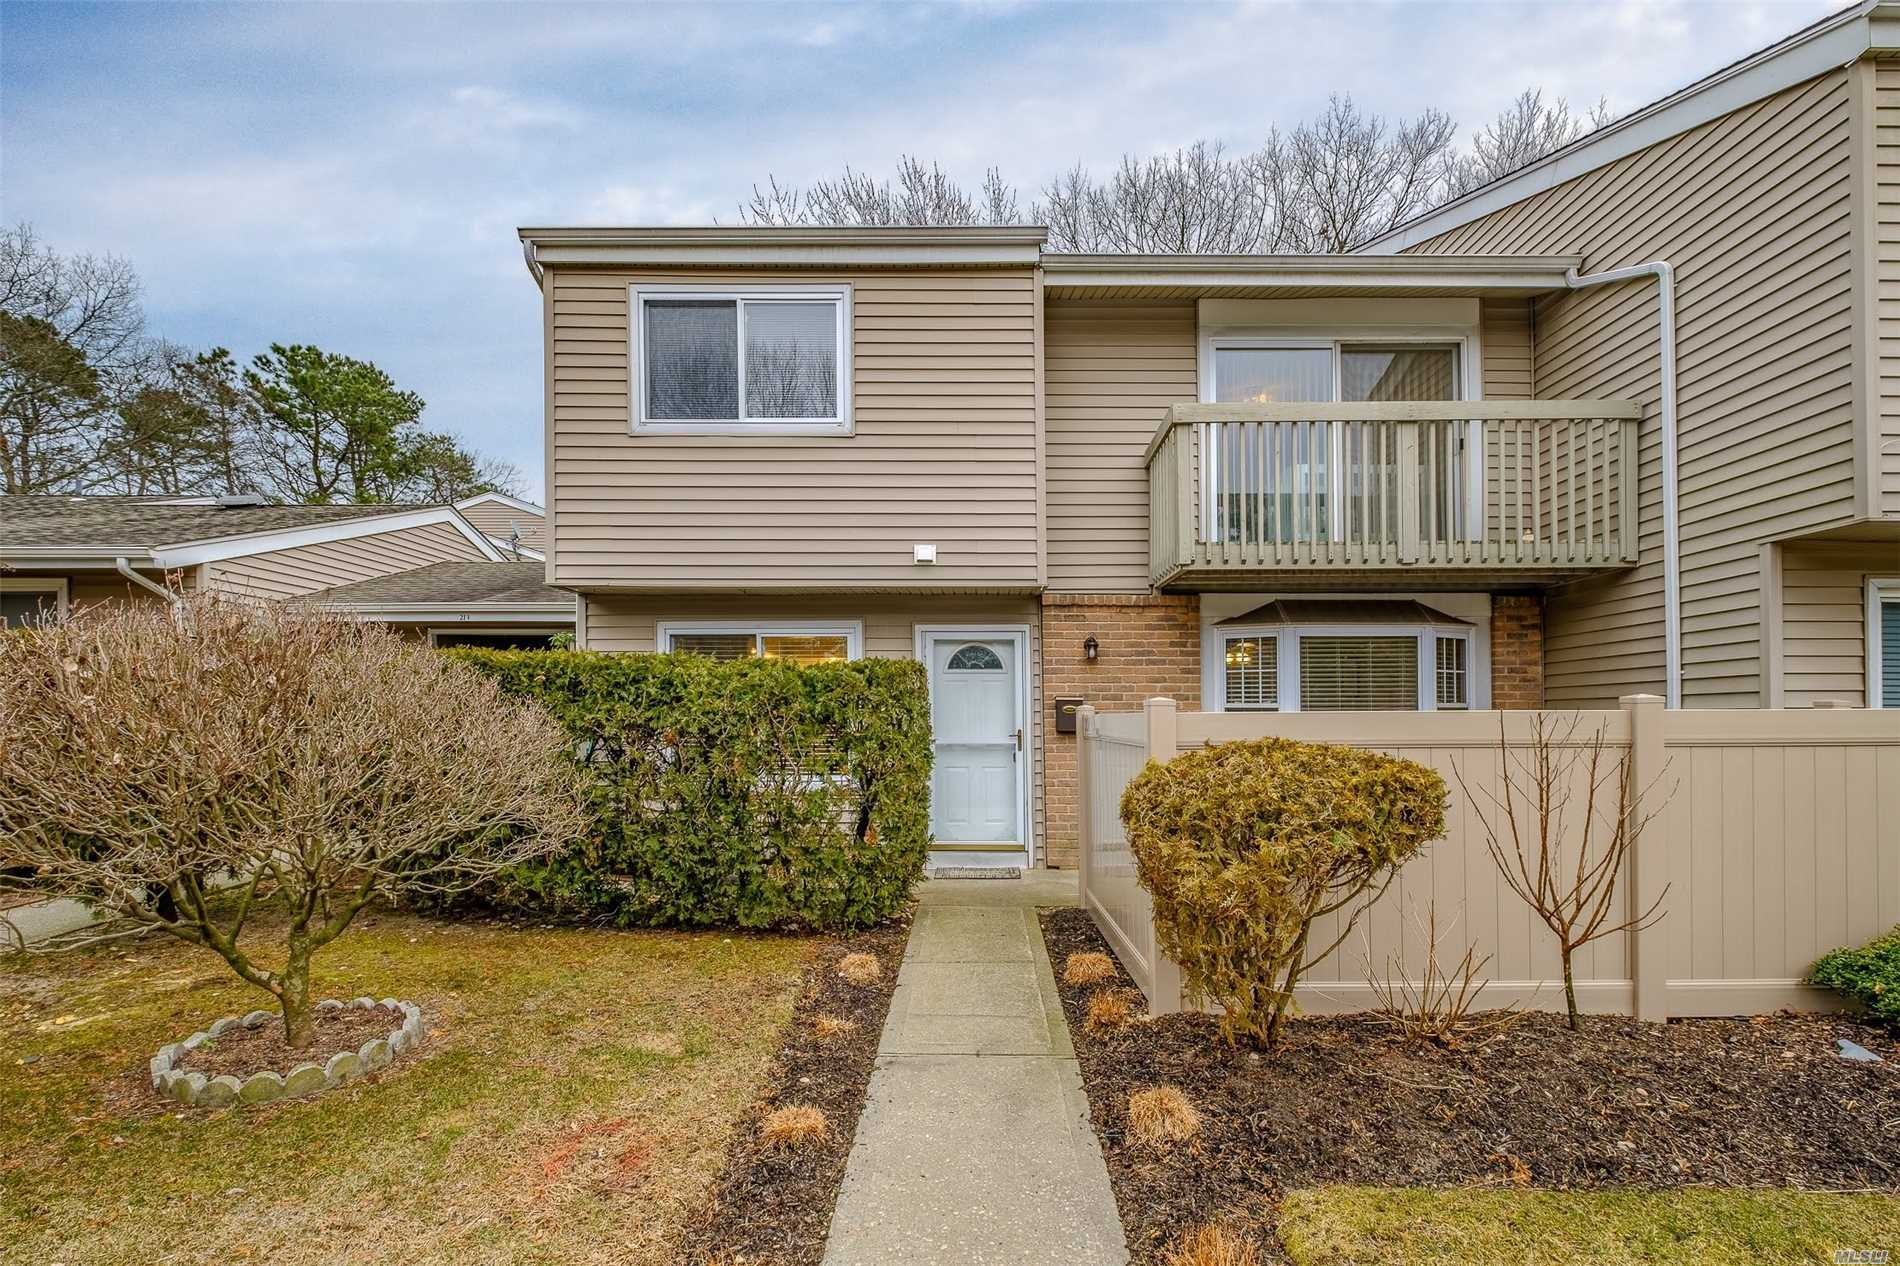 Move in Ready! Immaculate & Beautifully Updated 2 Bedroom Corner Townhouse In A Desirable Location in Sachem School District. Perfectly Located Directly Across The Street To Pool & Playground. Enjoy All The Amenities, Clubhouse, Pool, Tennis, Basketball & Playground. Close To All Major Highways. New Fence Assessment for fence, $23.40 per month ends in March 2020. Common charges include water & basic cable.